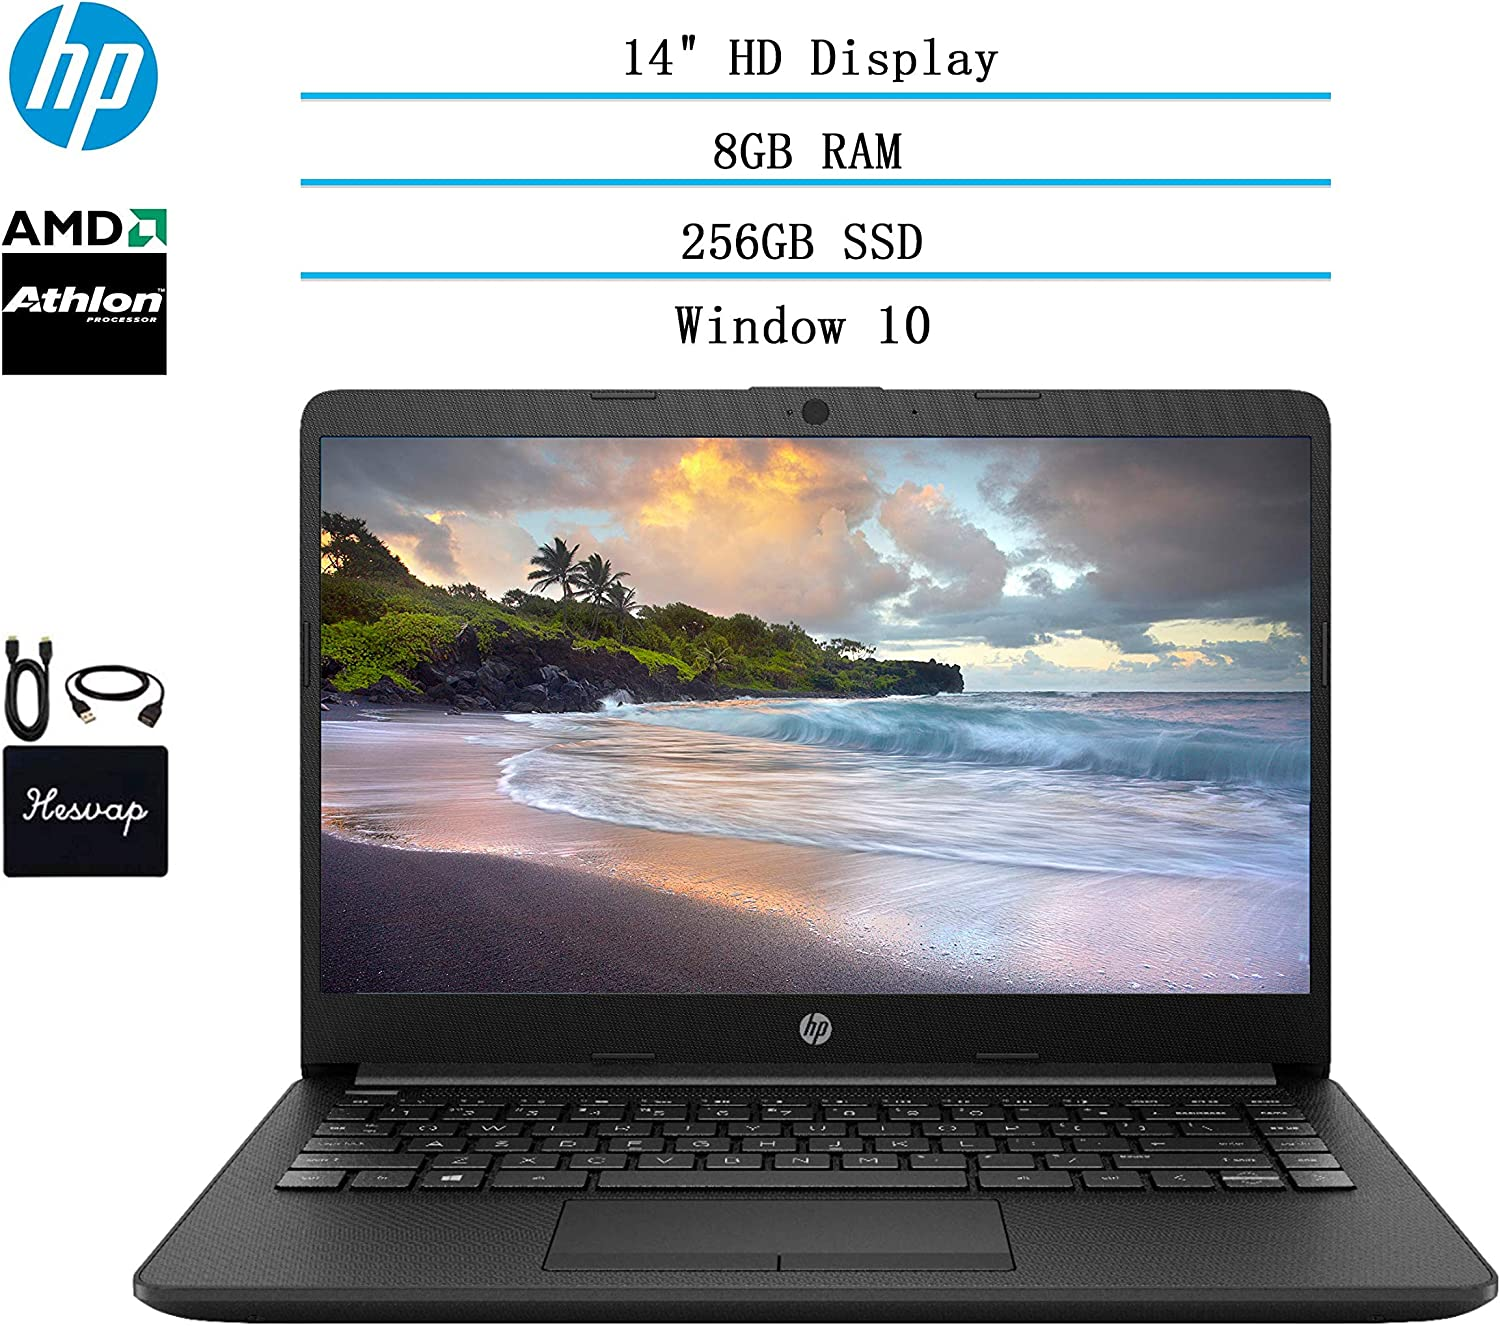 2020 HP 14 inch HD Laptop Newest for Business and Student, AMD Athlon Silver 3050U (Beat i5-7200U), 8GB DDR4 RAM, 256GB SSD, 802.11ac, WiFi, Bluetooth, HDMI, Windows 10 w/HESVAP 3in1 Accessories